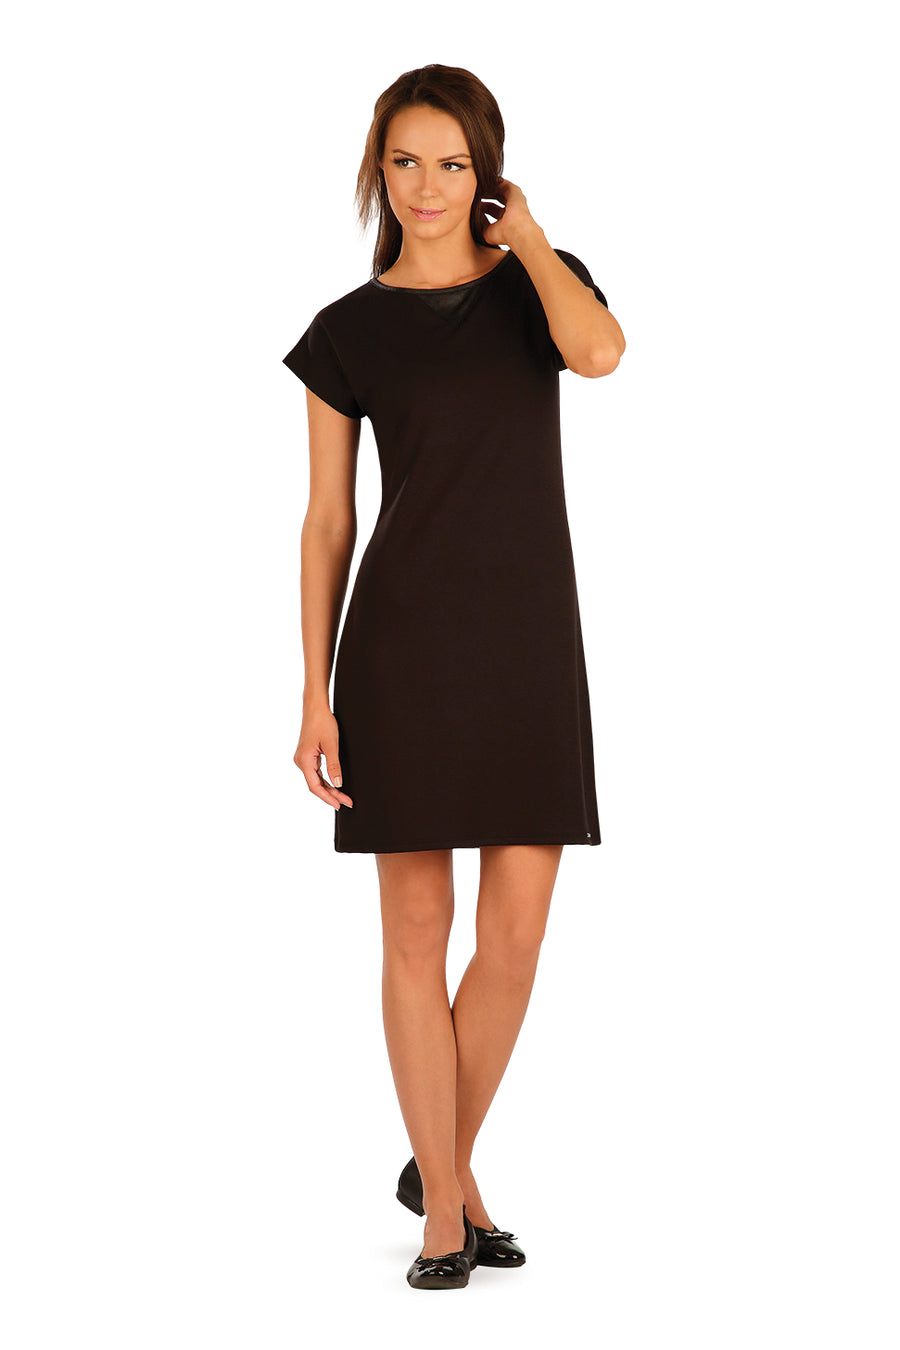 Black Dress With Short Wing Sleeve